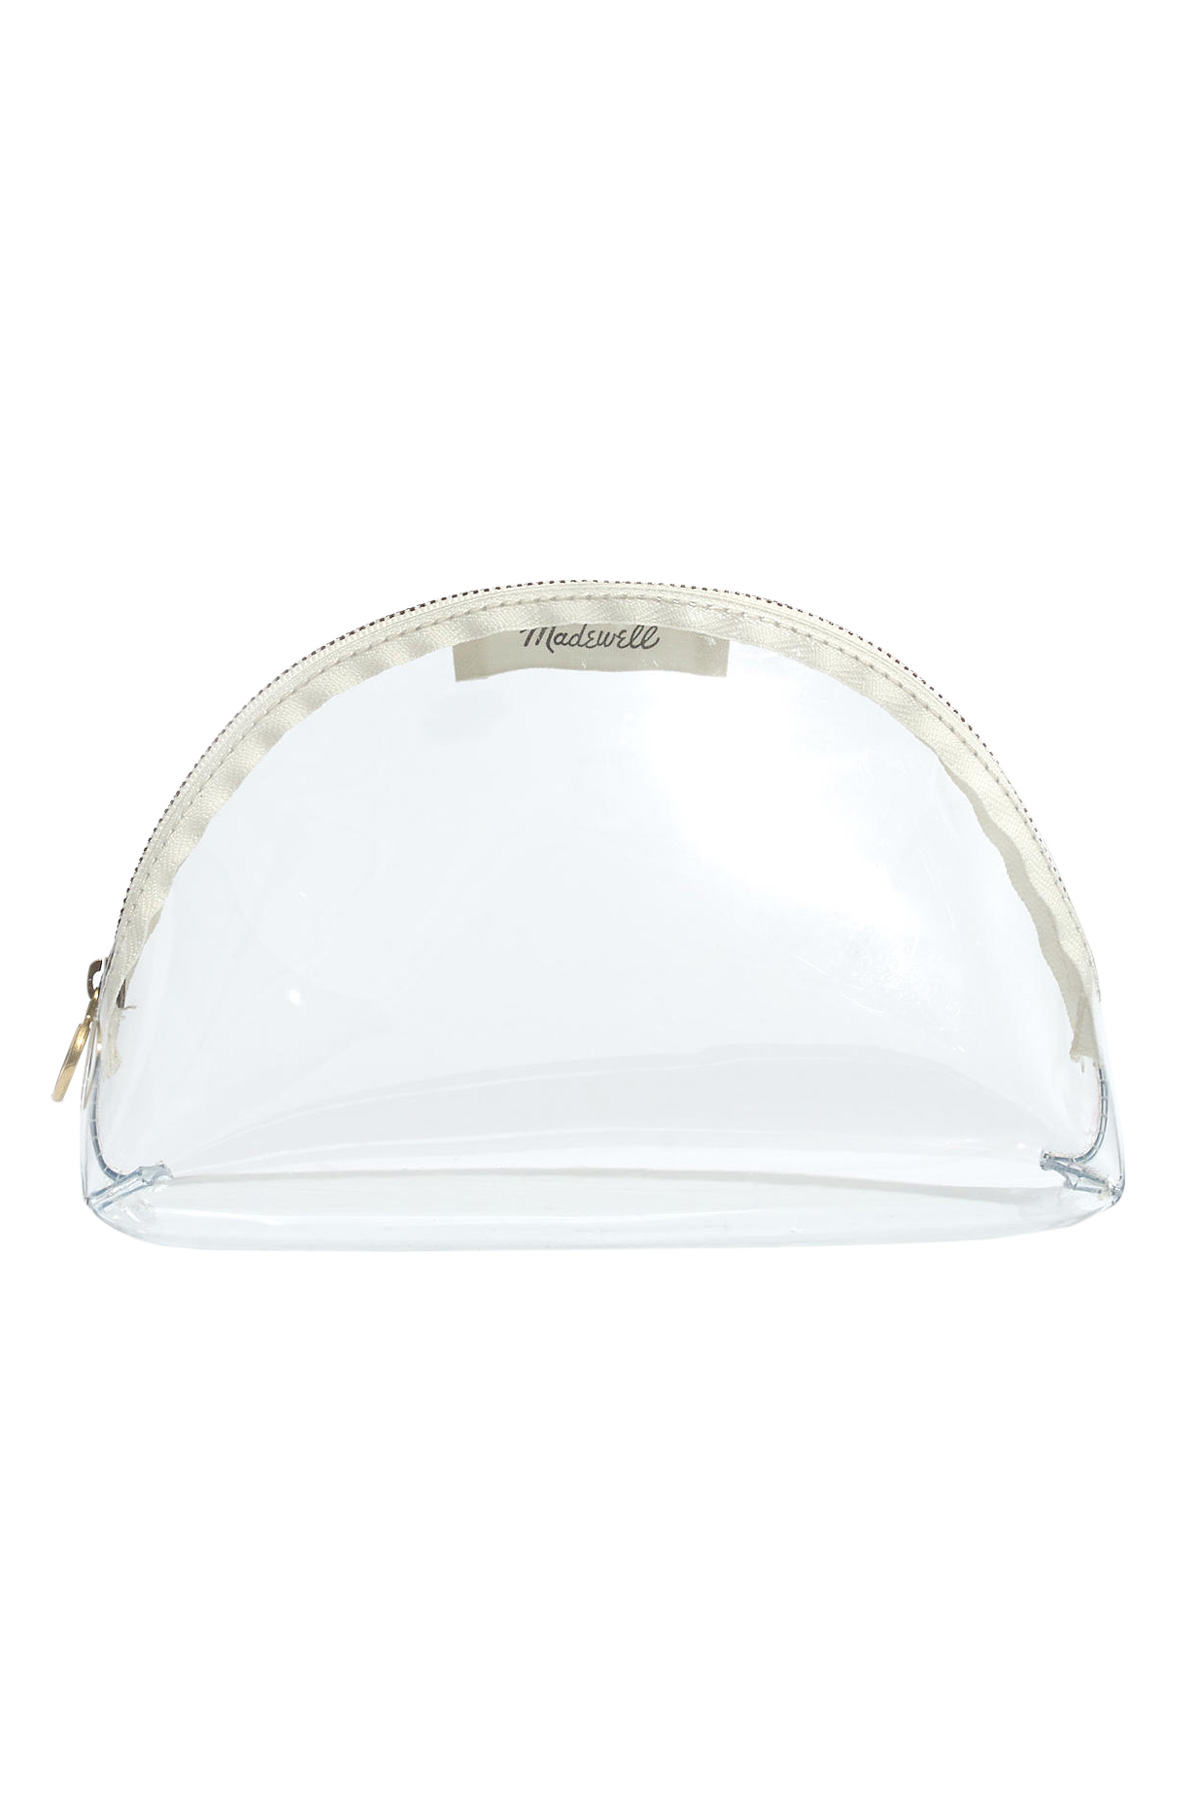 Madewell Small Crystaline Half-Moon Pouch